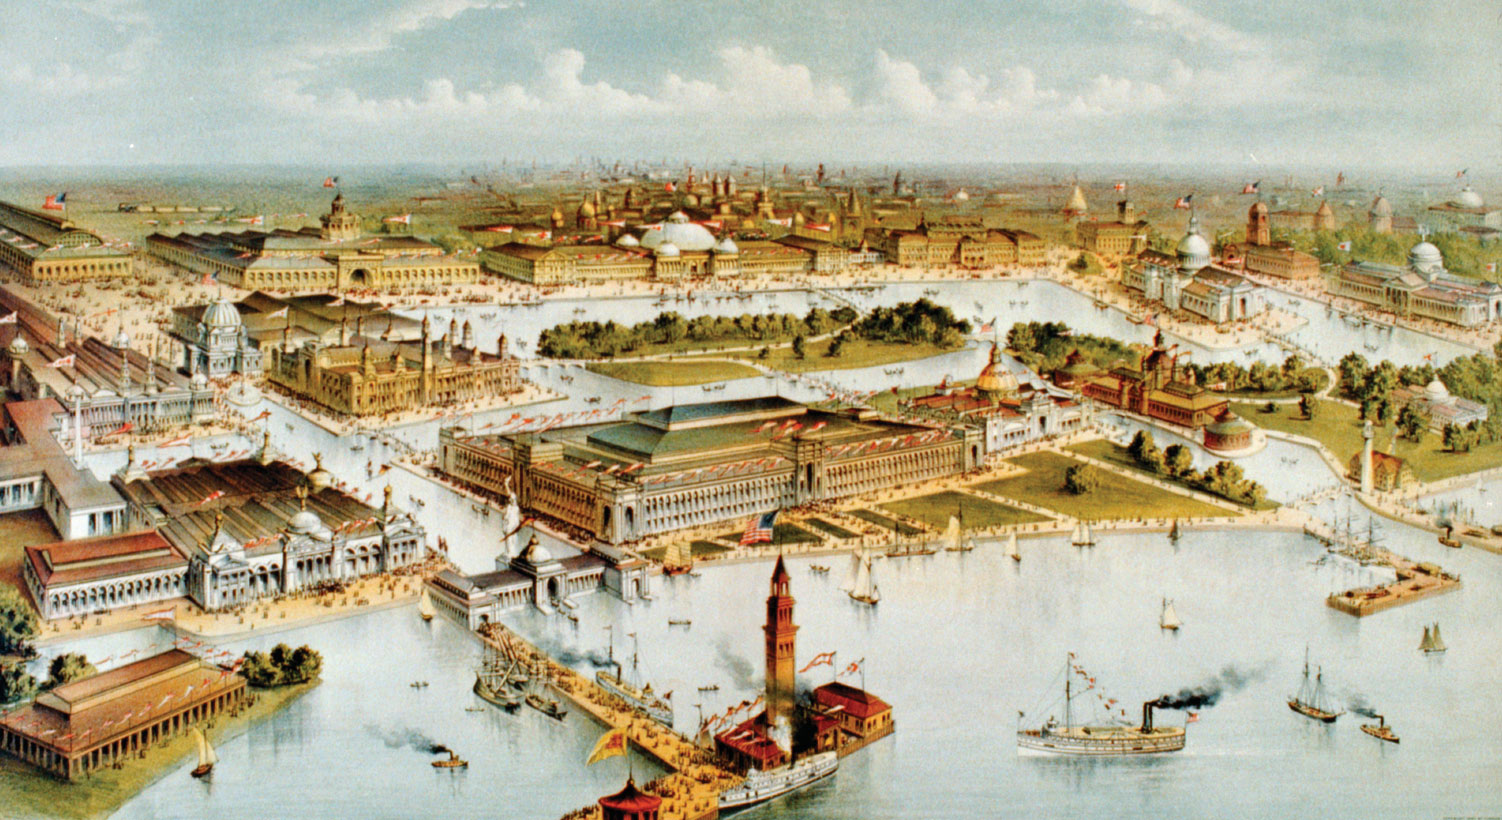 96805-050-e35dc6cf Birds-eye view of the 1893 Worlds Columbian Exposition Chicago Burnham plab